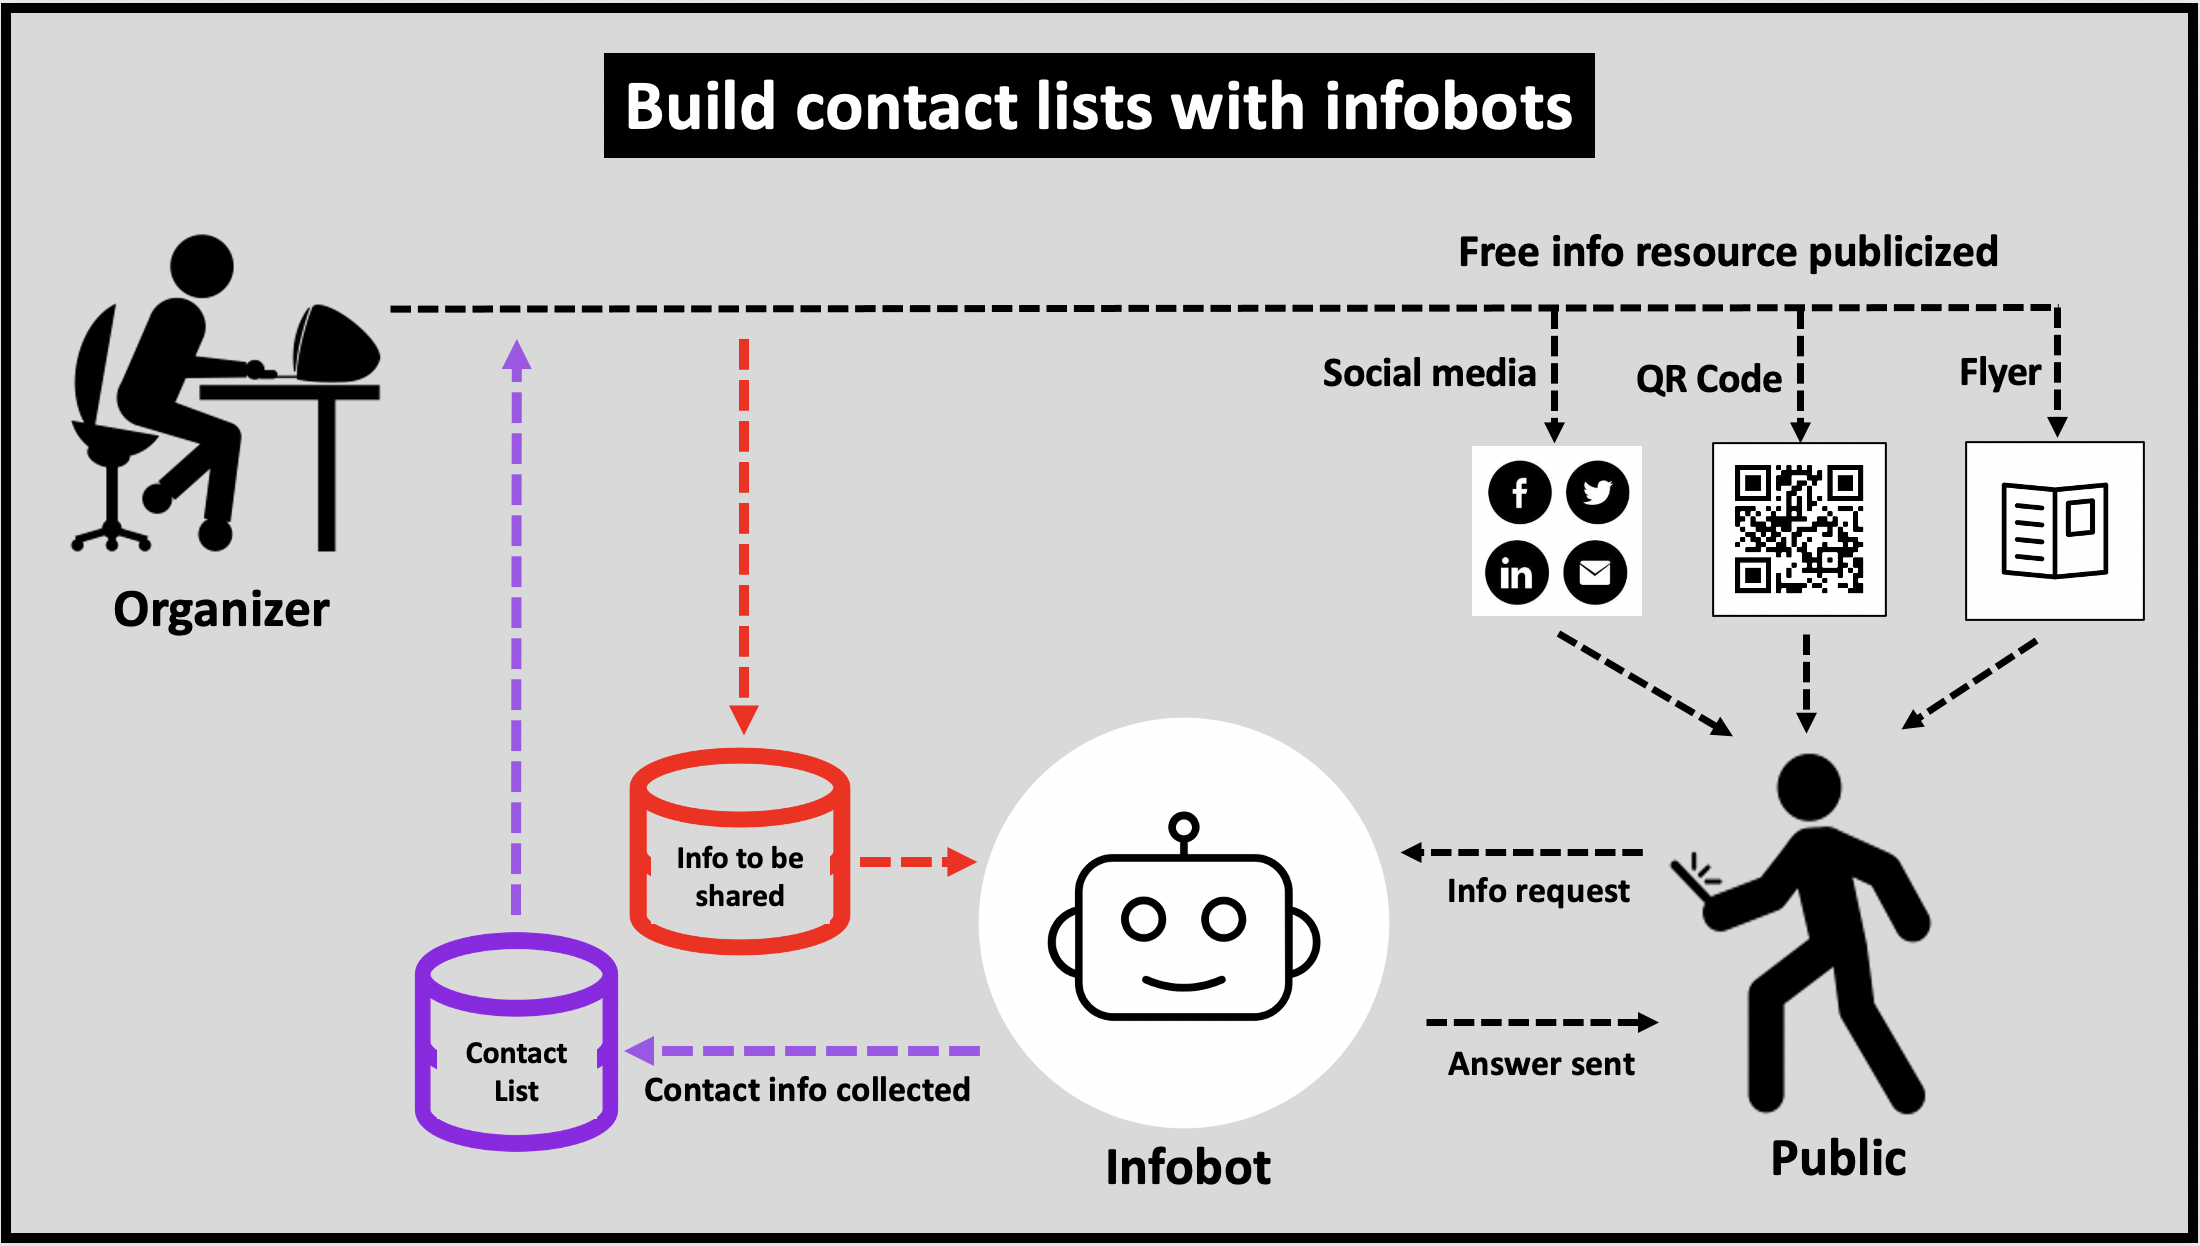 Use infobots to provide helpful information and collect contact details on the people being helped at the same time.